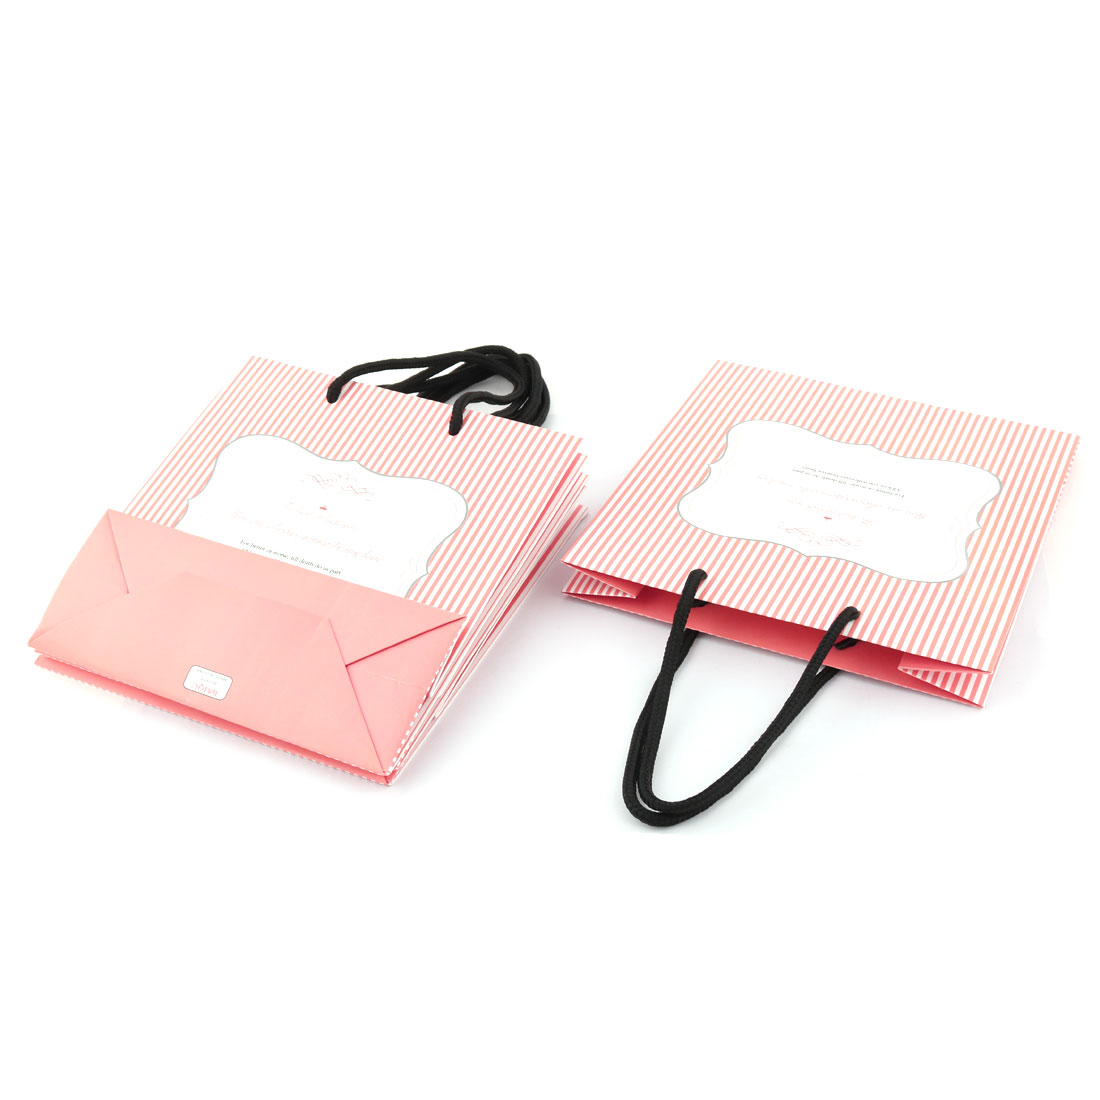 Paper Stripe Pattern Anniversary Birthday Party Present Gift Decor Bags Holder Coral Pink 4pcs